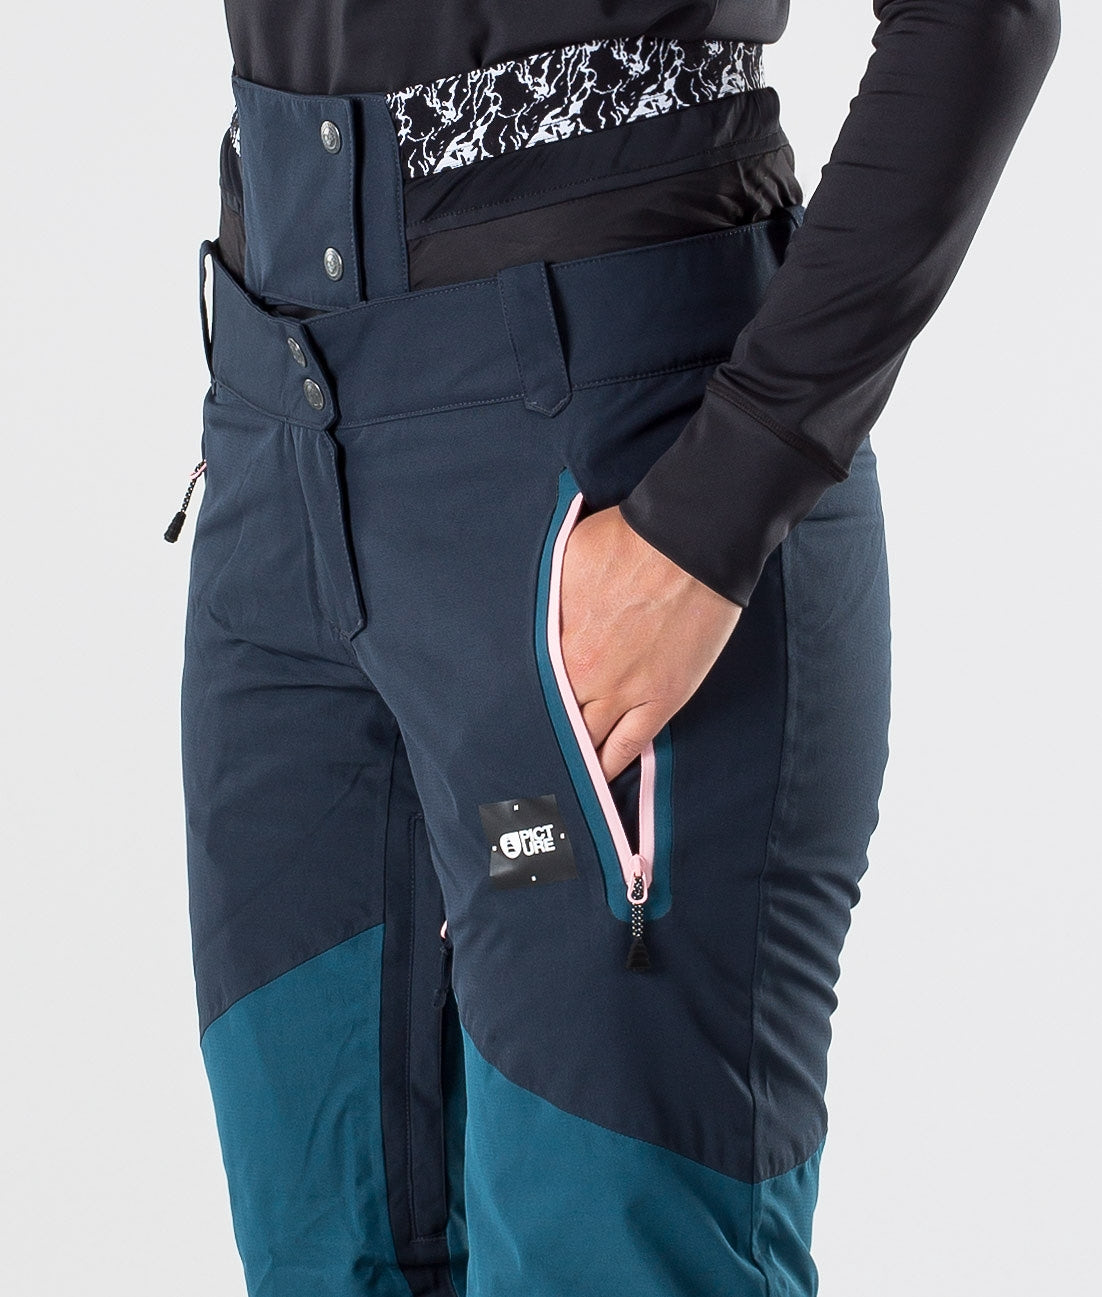 Buy Seen Snow Pants from Picture at Ridestore.com - Always free shipping, free returns and 30 days money back guarantee